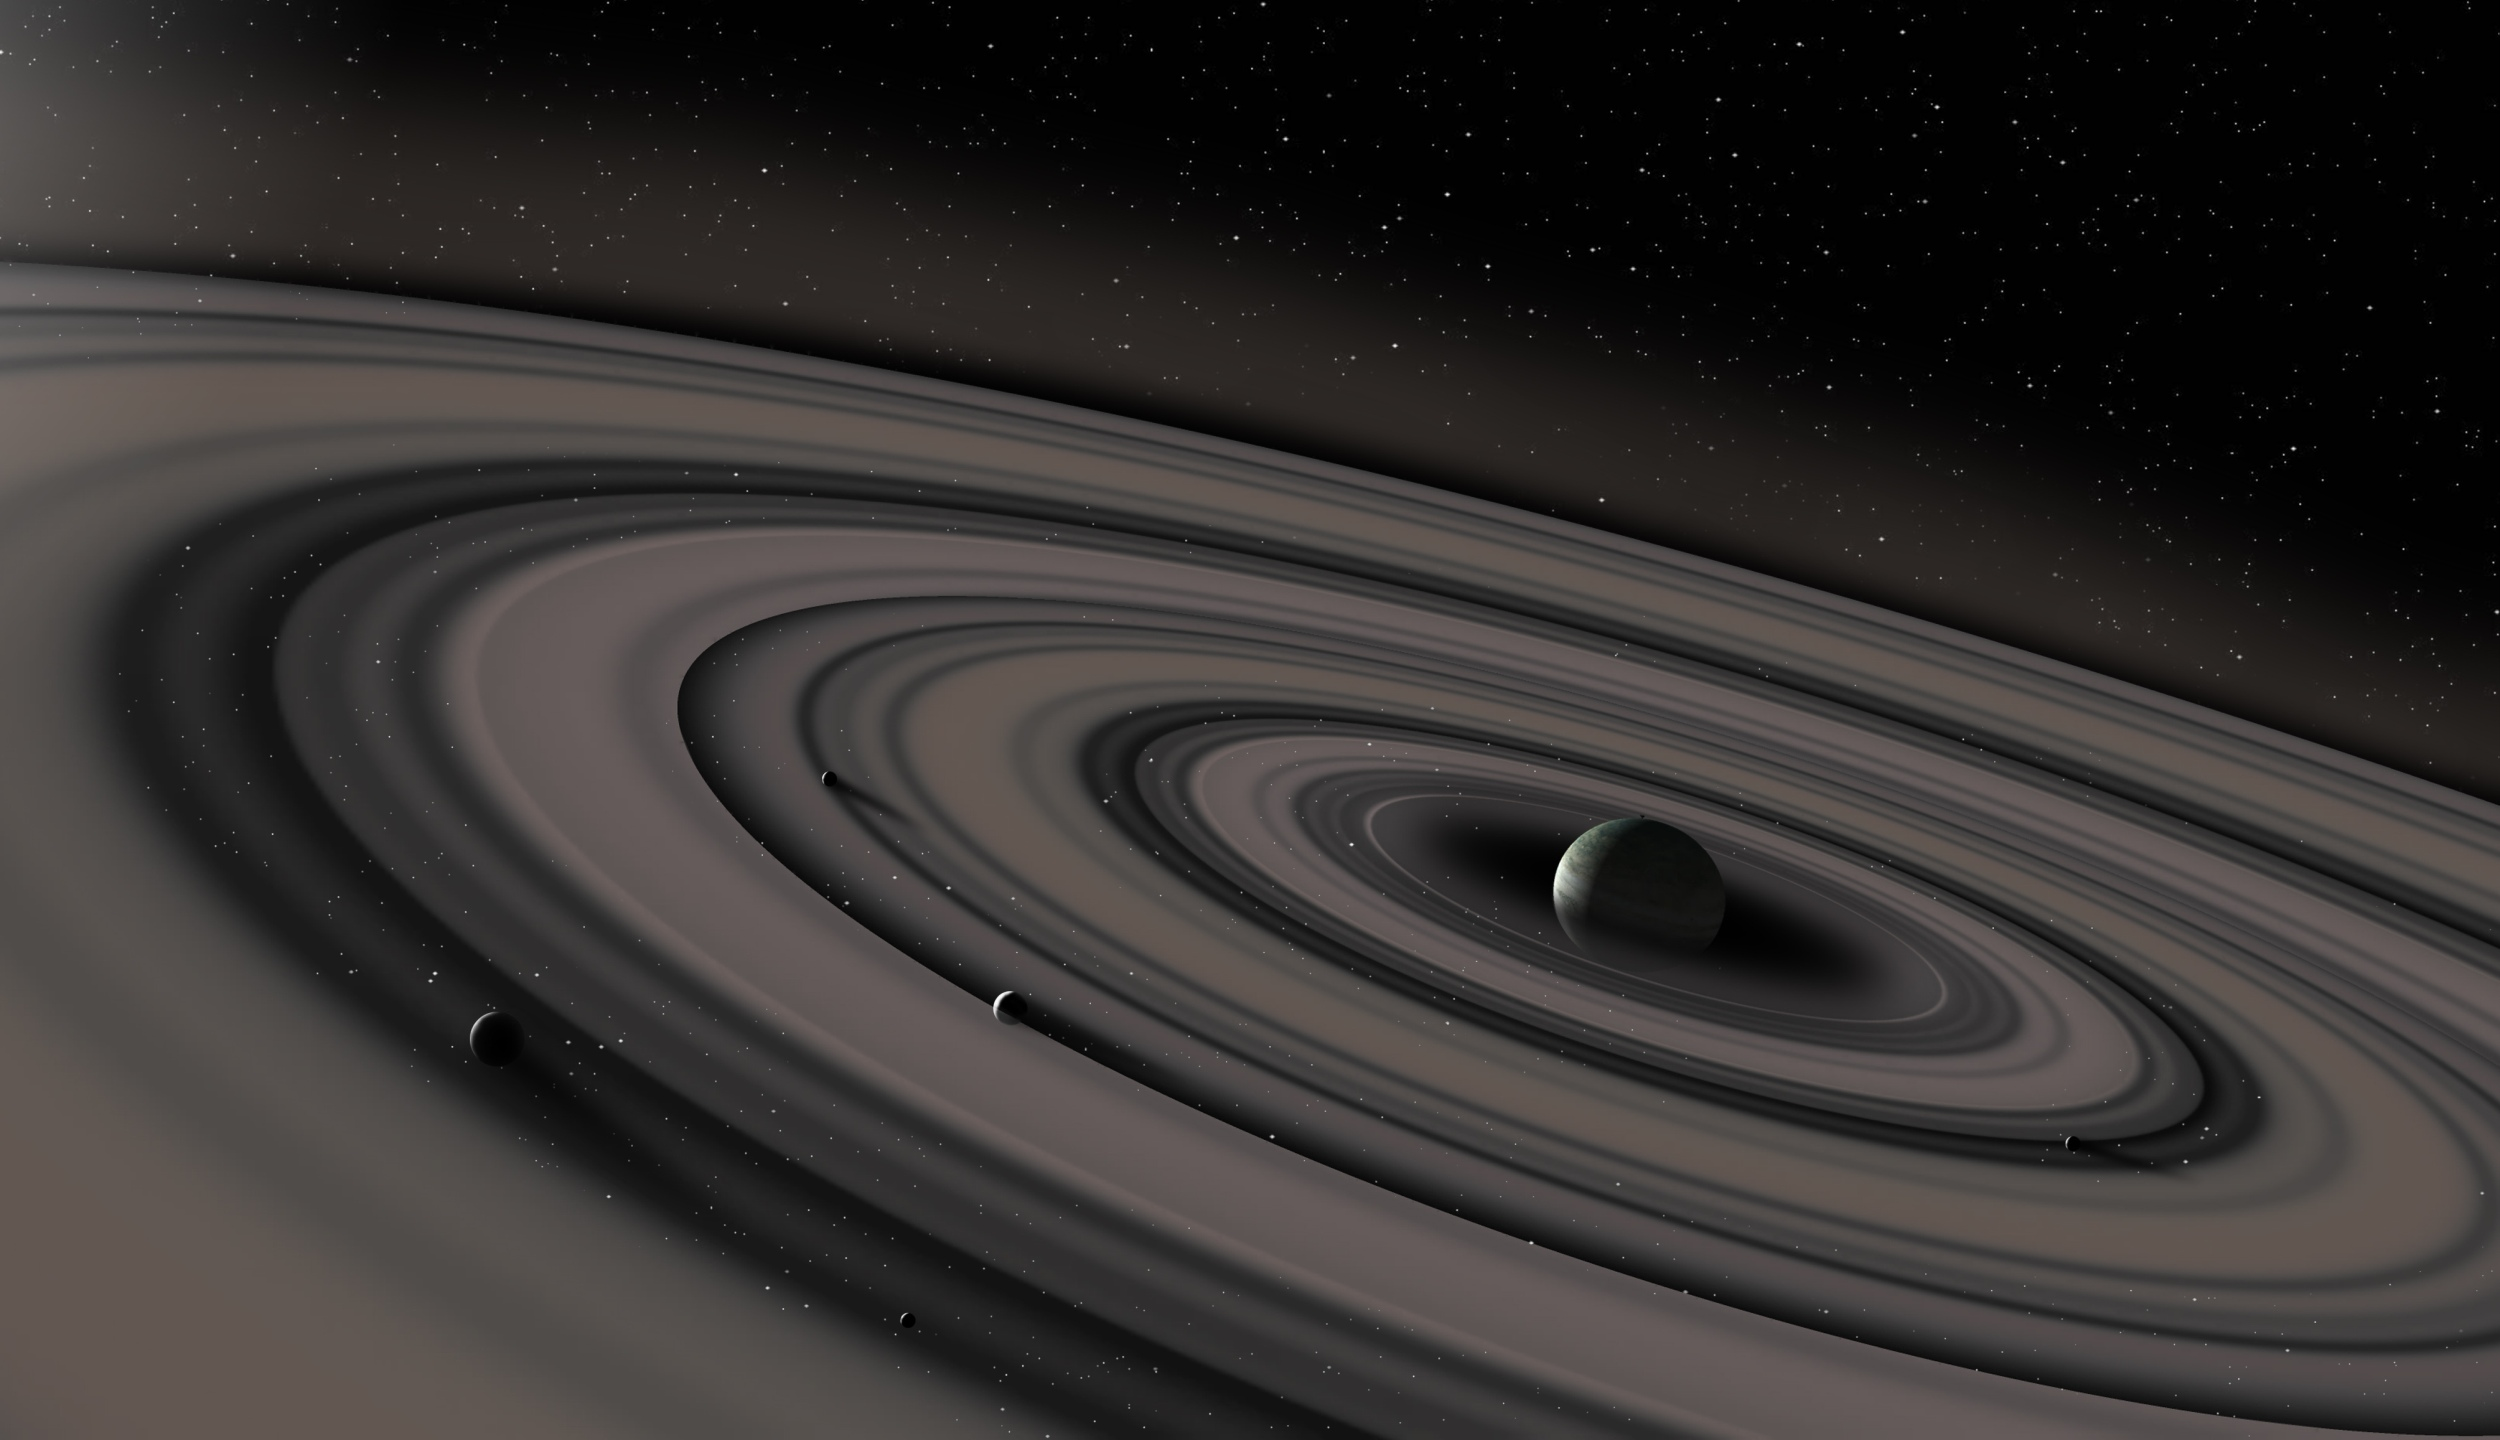 planet saturn rings - photo #9